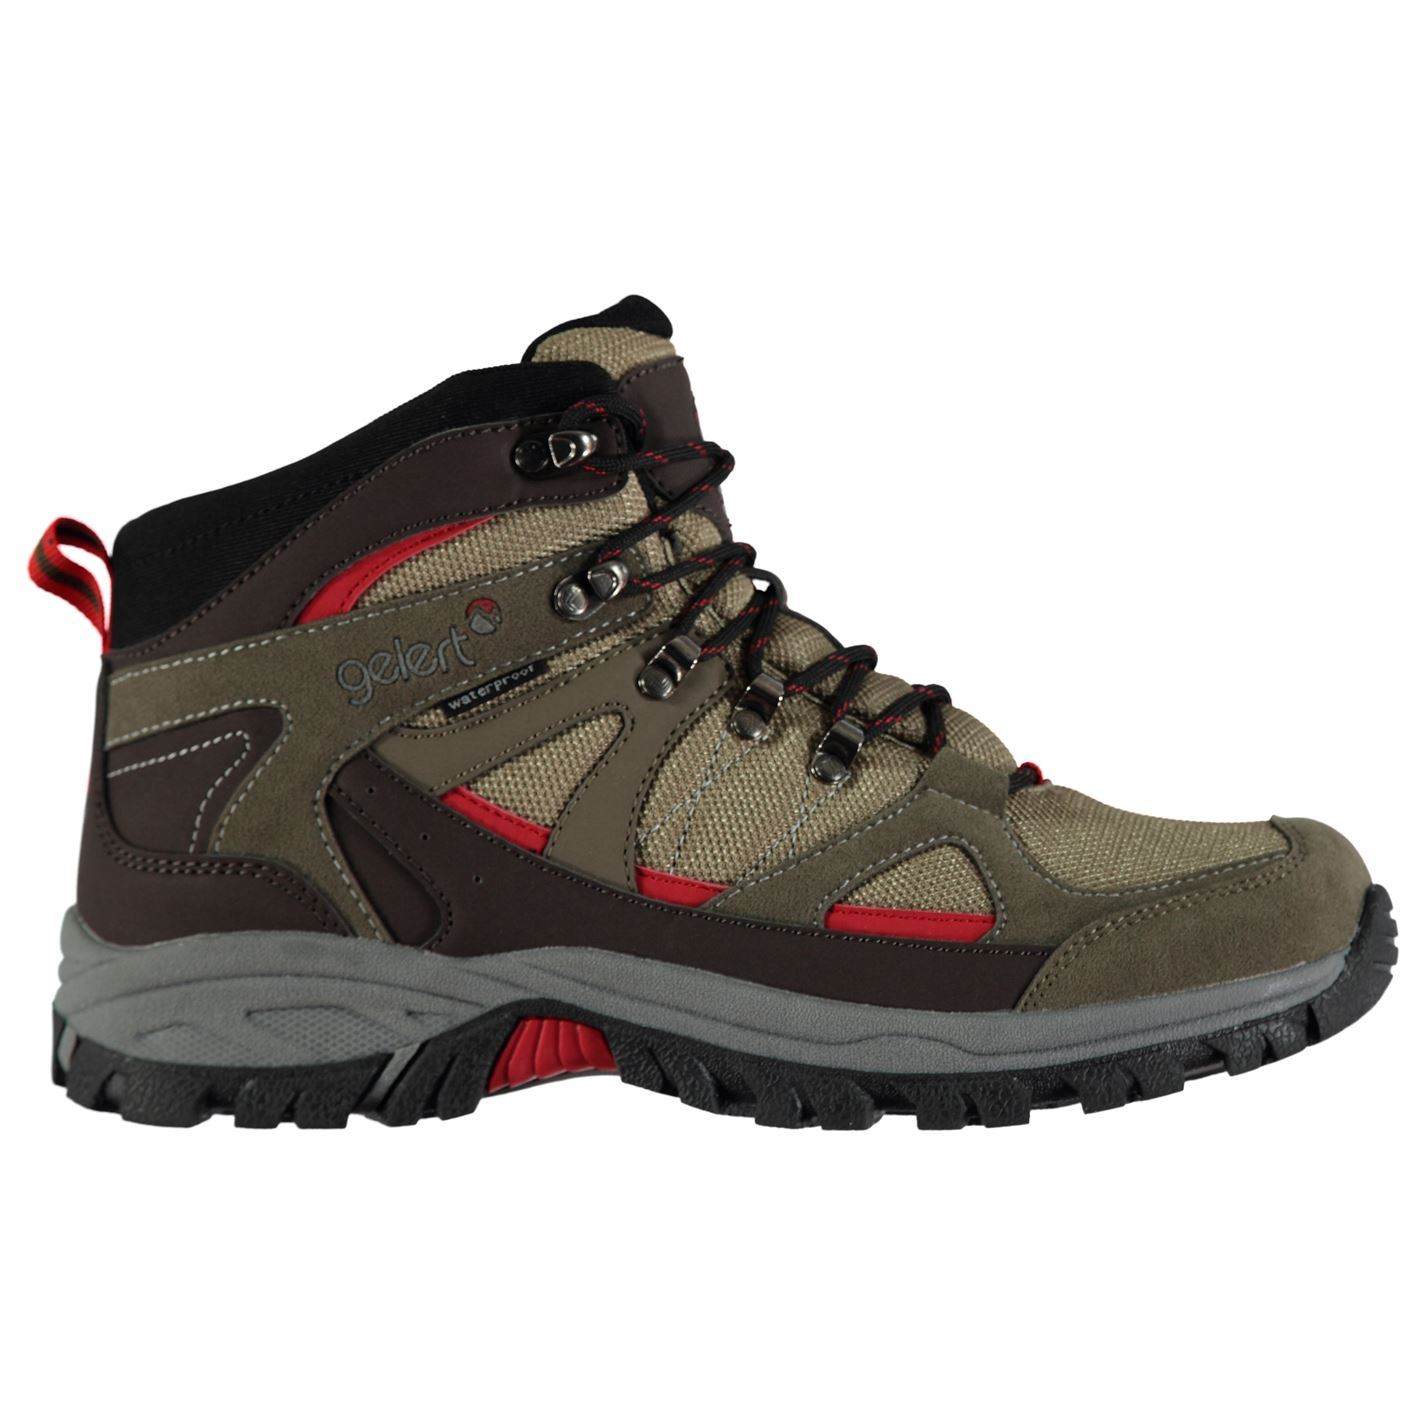 cf8311aafd8 Gelert Mens Snowden Waterproof Walking Boots Lace Up Breathable